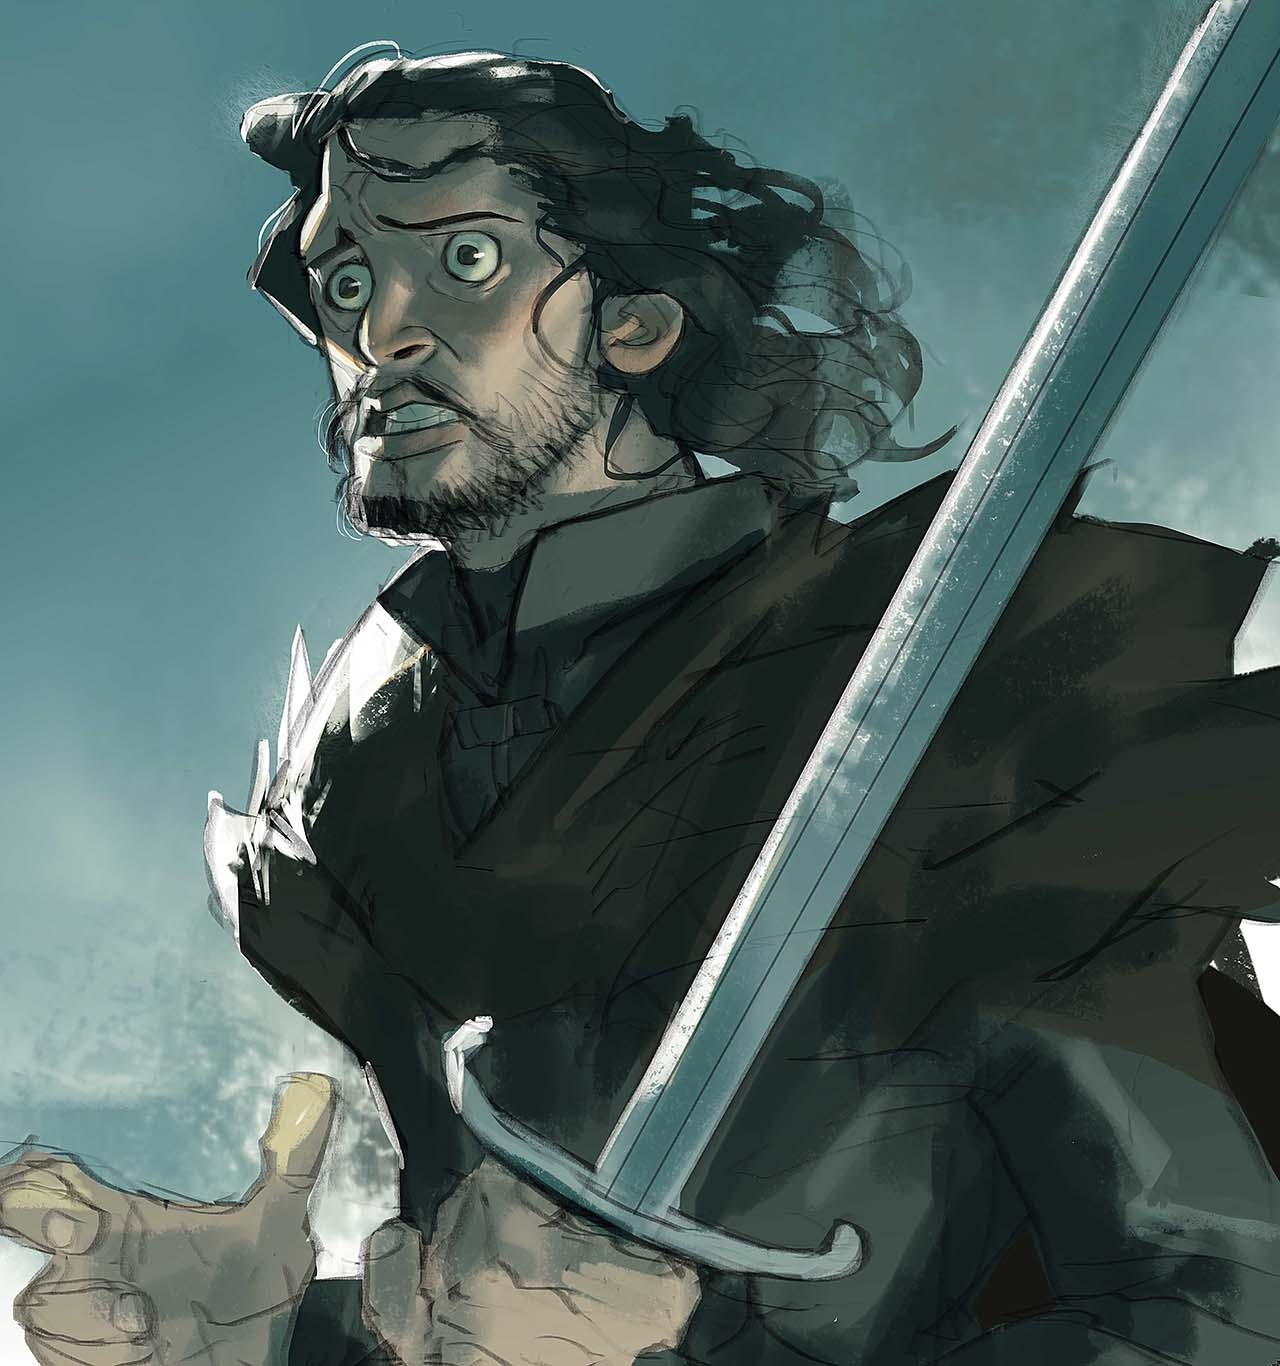 Artist Creates Unique Character Arts From Game Of Thrones – Jon Snow Character Art By Ramón Nuñez